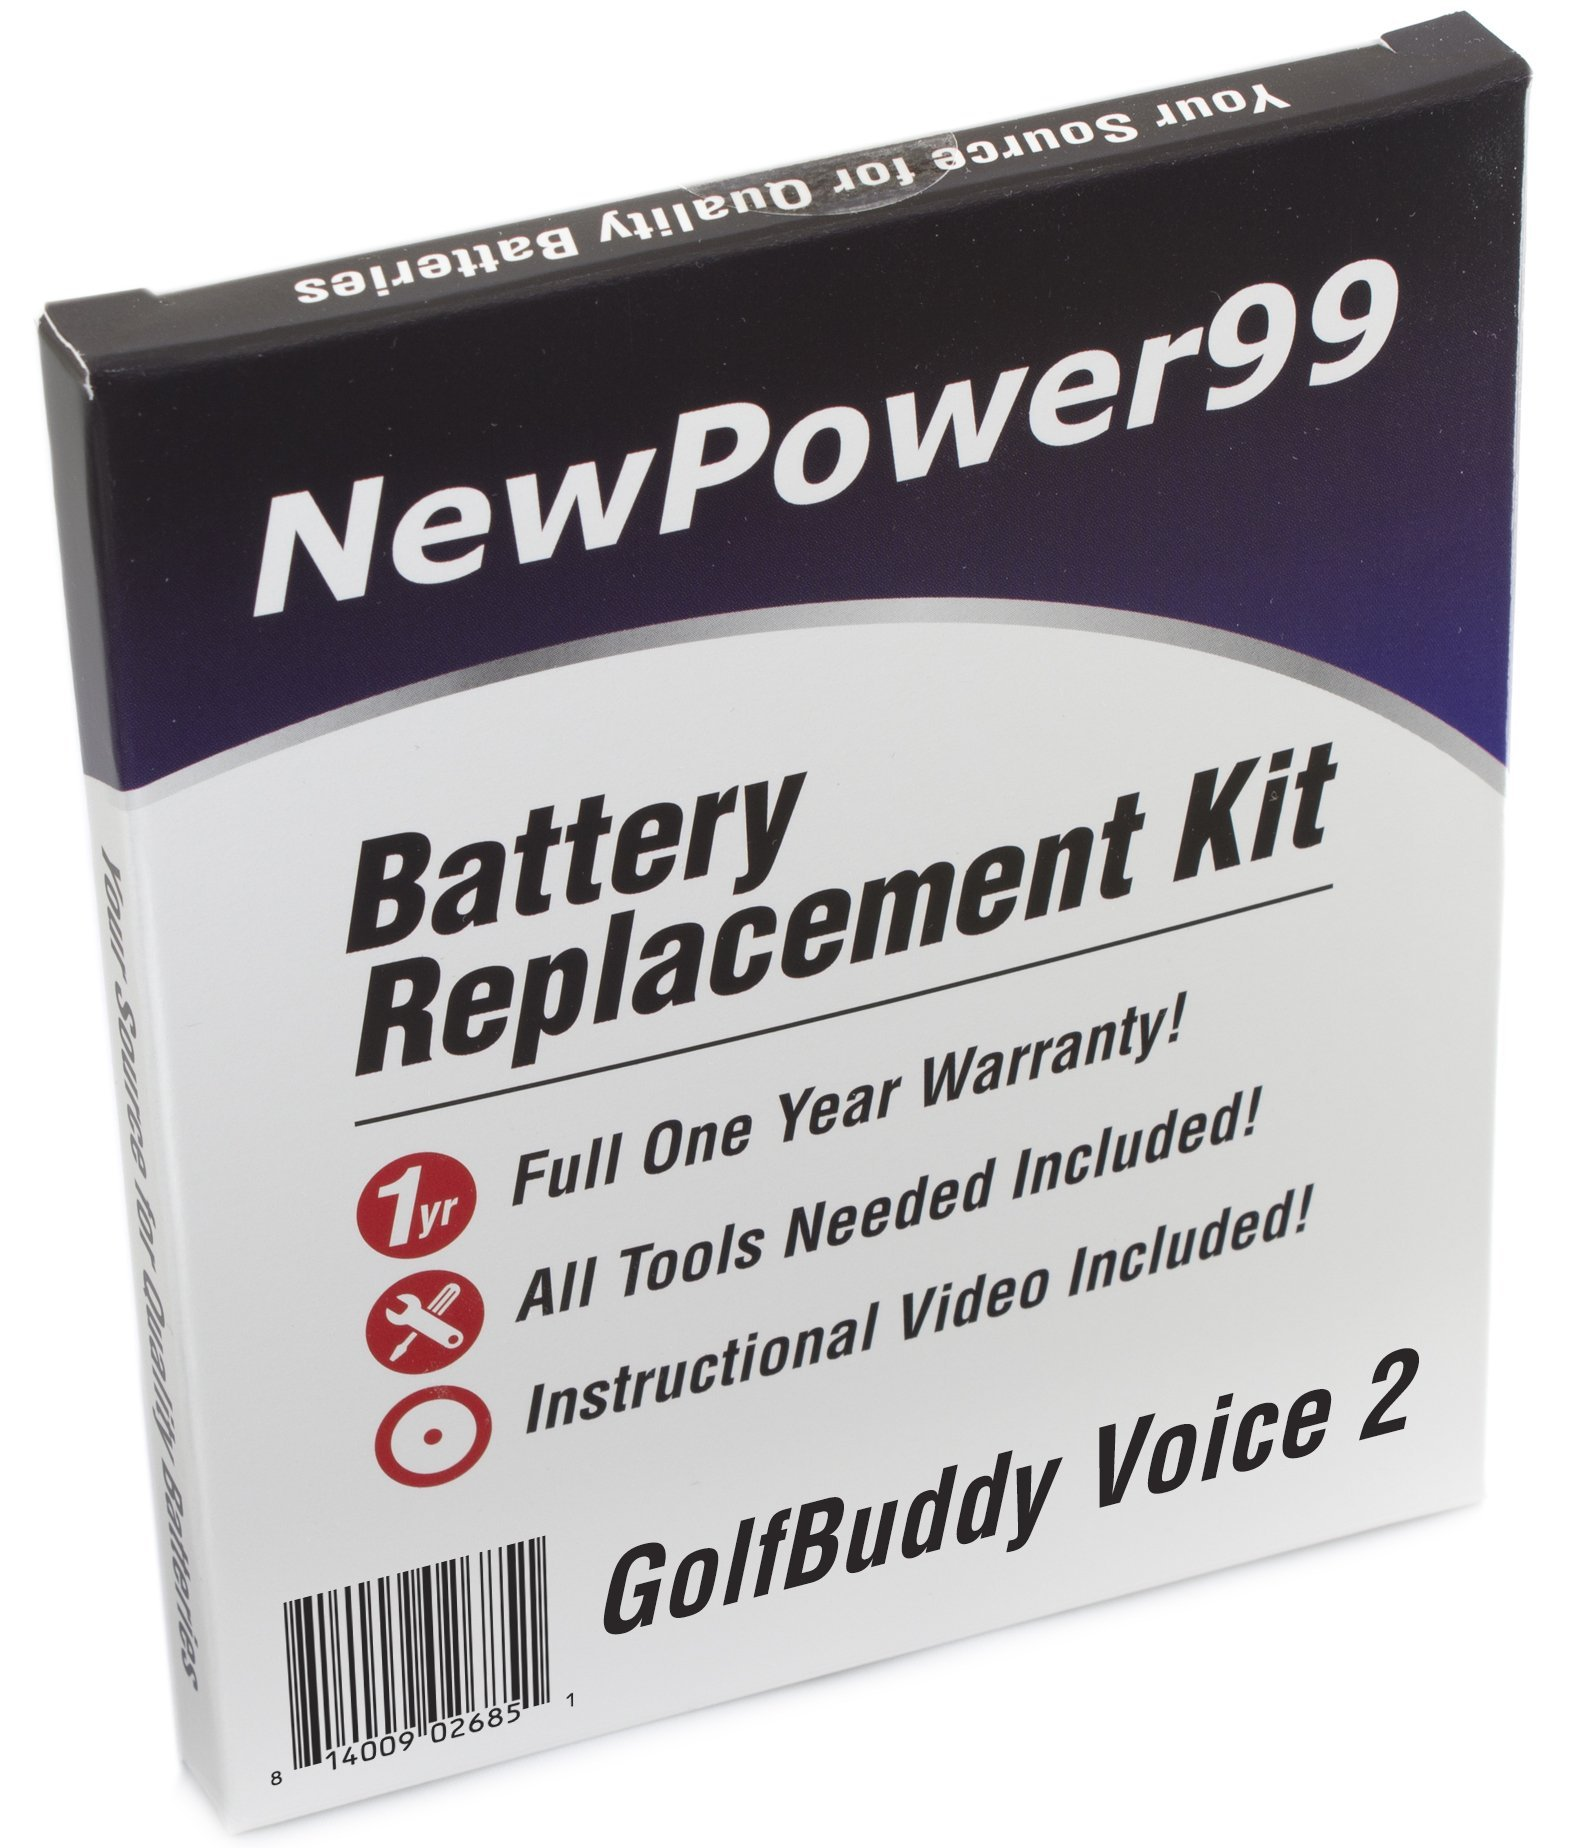 NewPower99 Battery Replacement Kit for GolfBuddy Voice 2 with Installation Video, Tools, and Extended Life Battery. by NewPower99